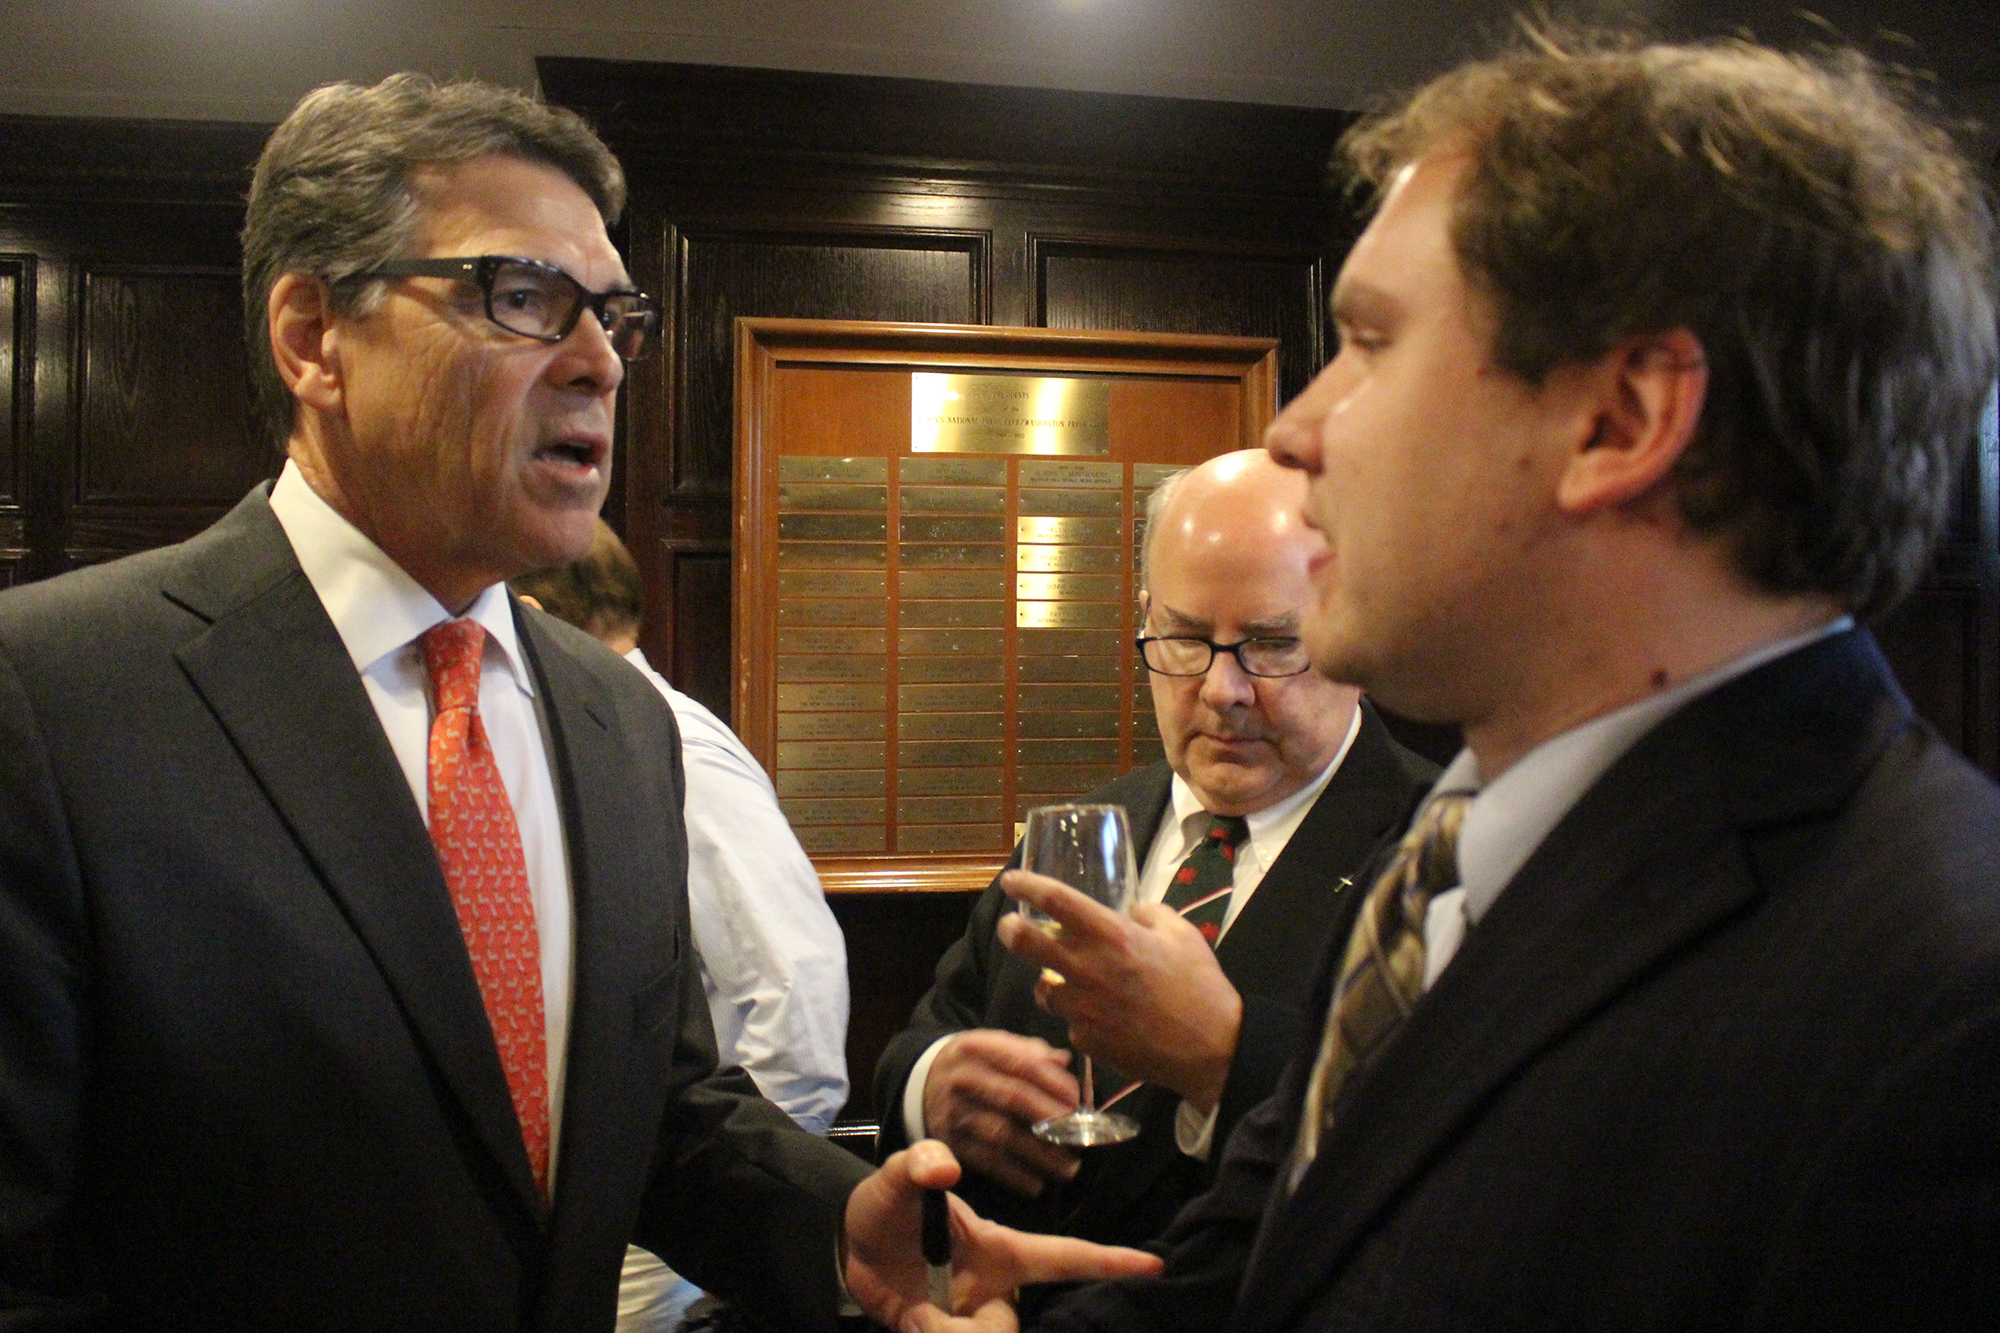 During the summer, James interviewed then-presidential candidate Rick Perry.